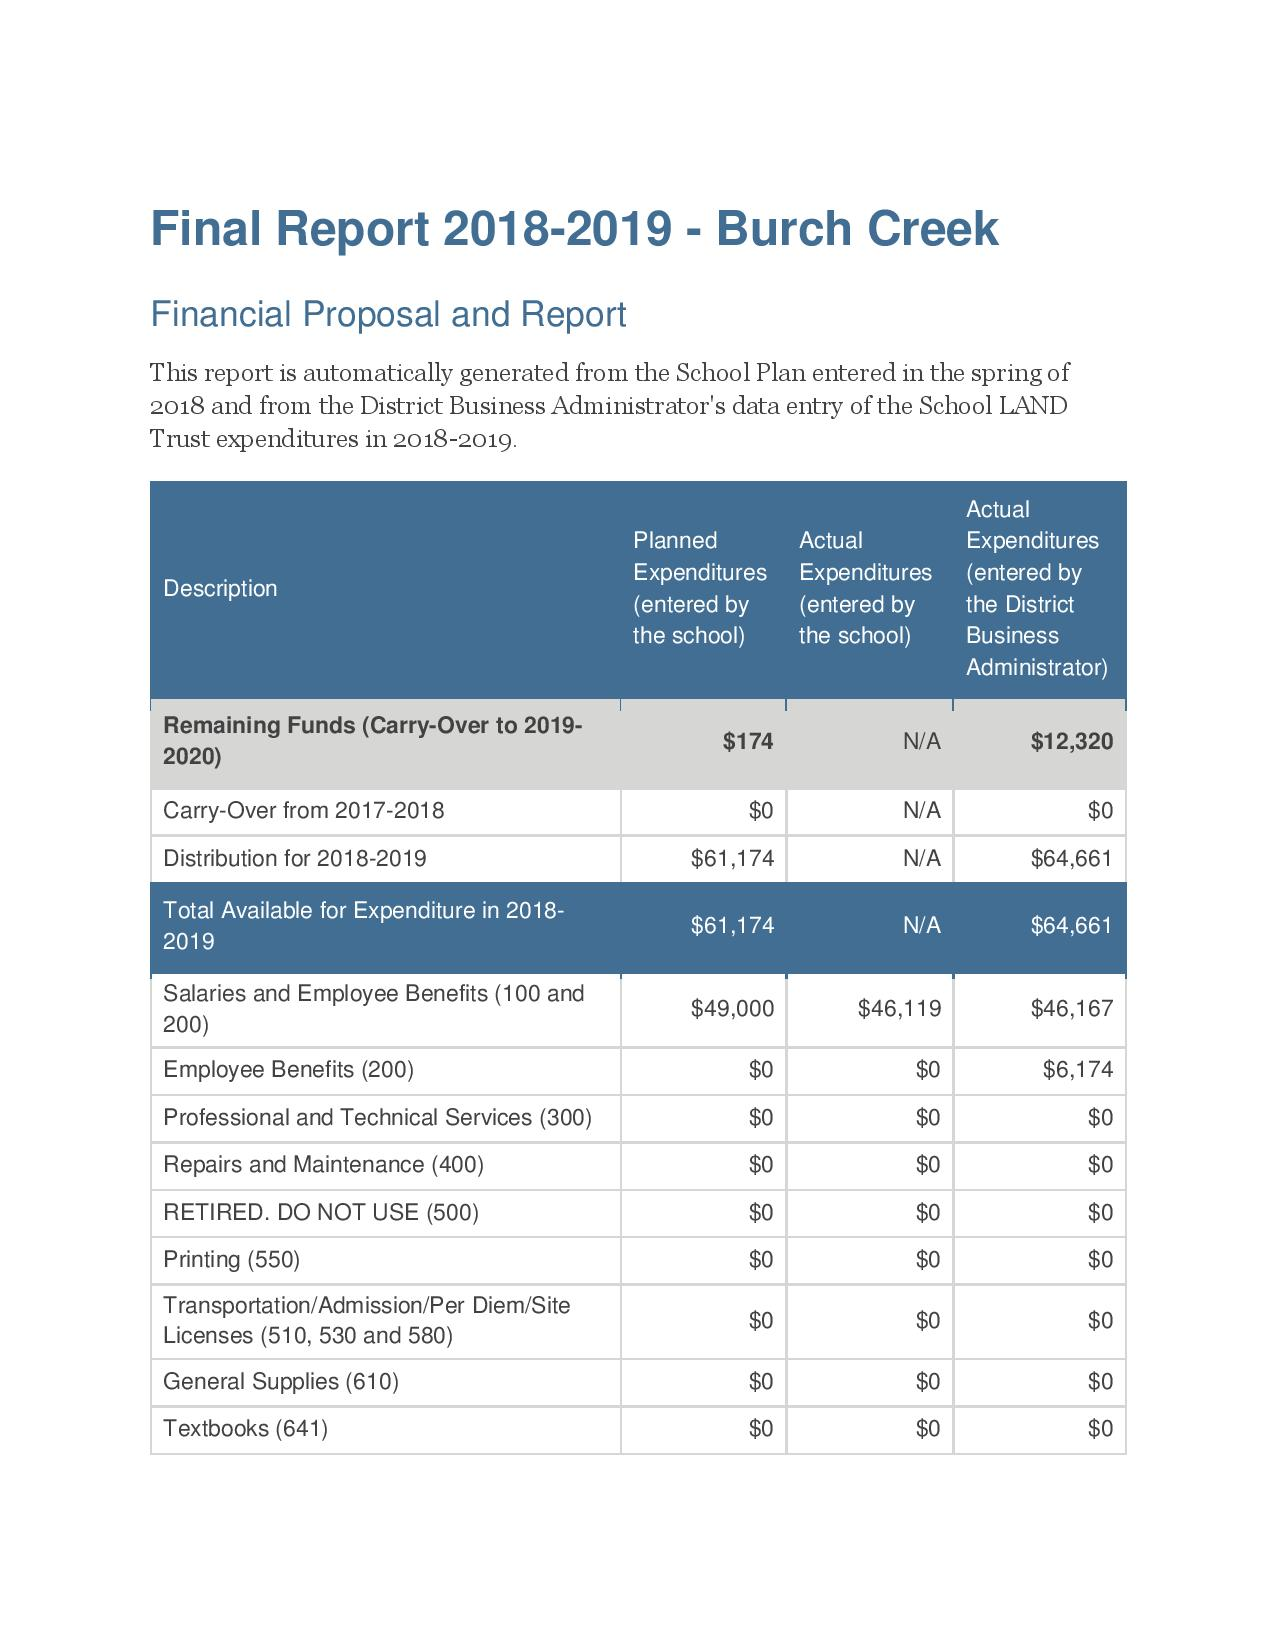 Final Trustlands Report 2018 2019 Burch Creek page 001